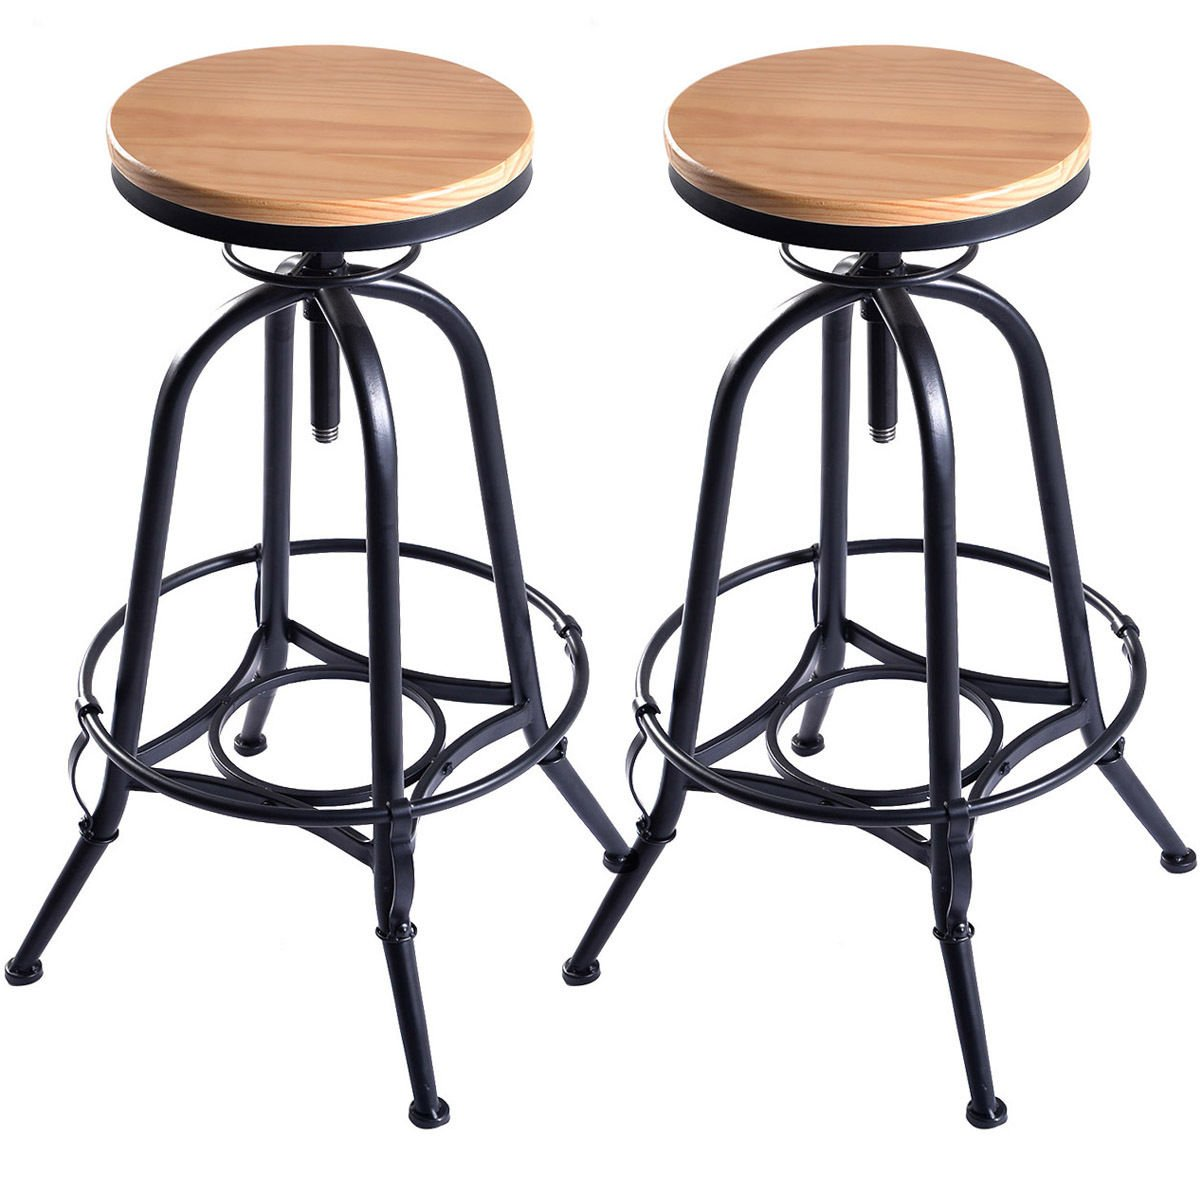 Costway Set Of 2 Vintage Bar Stools Industrial Metal